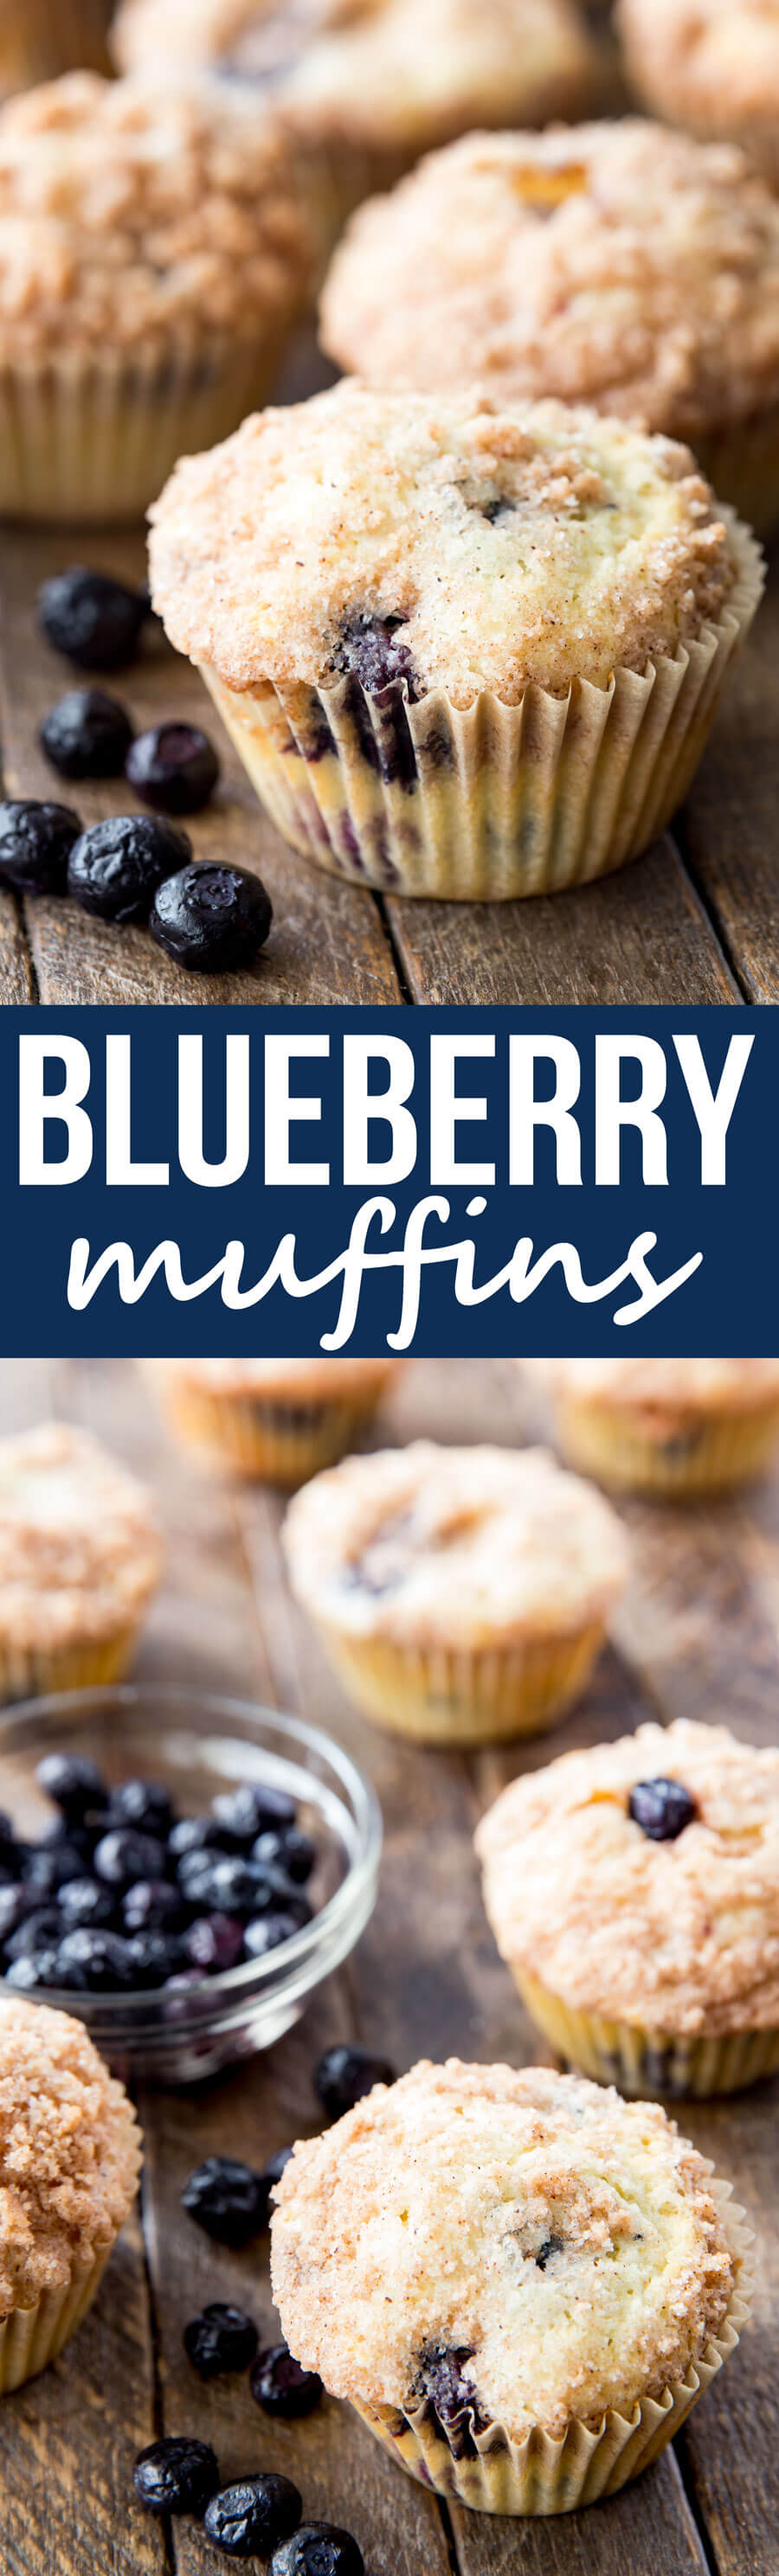 Blueberry Muffins are light, flaky and oh so delicious